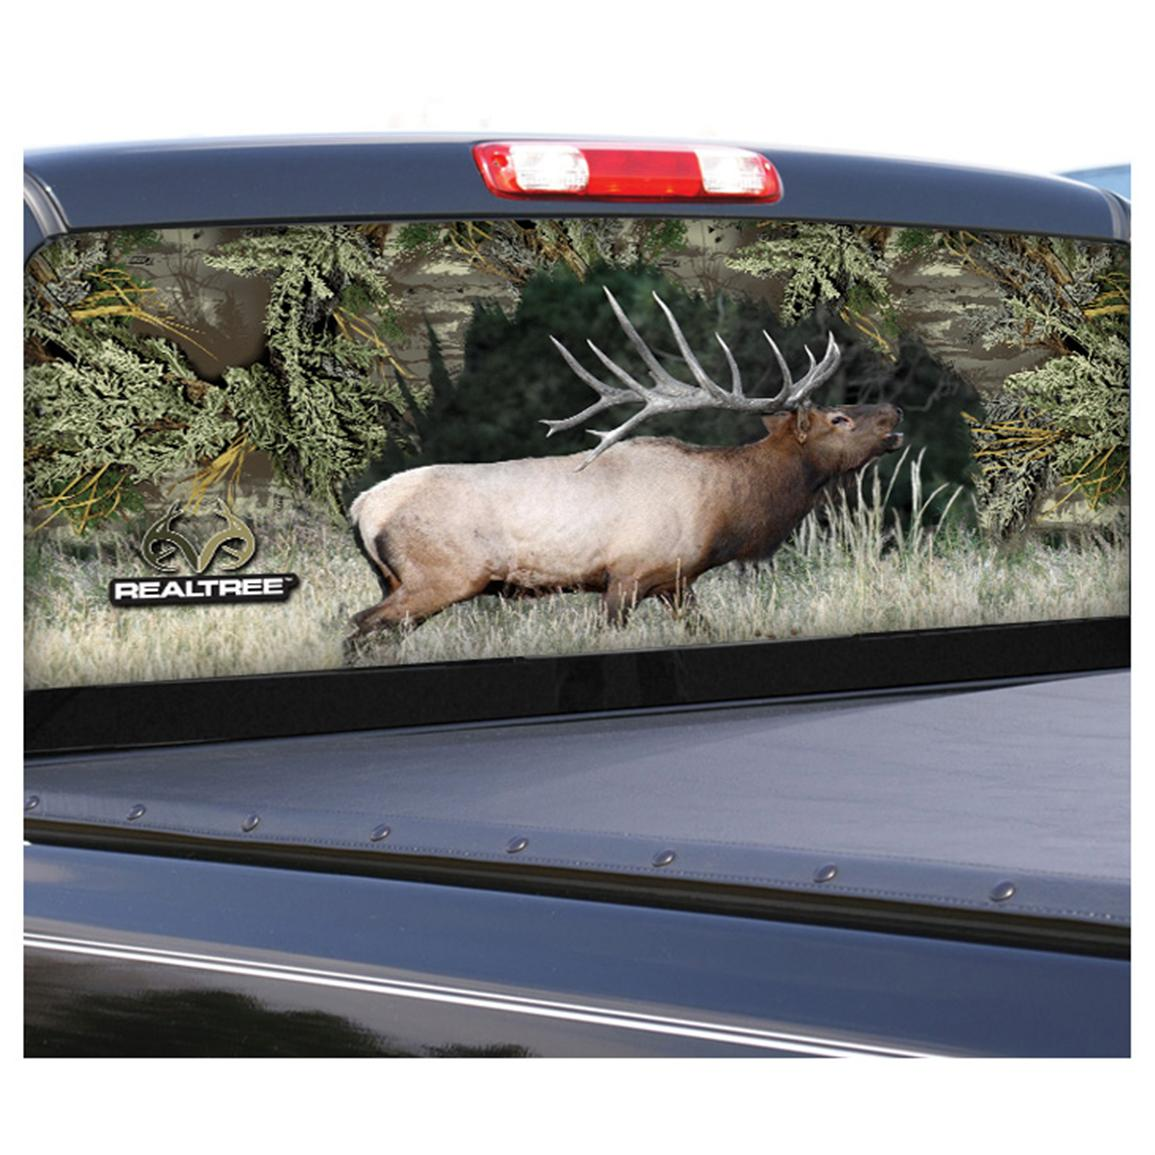 Camowraps® Elk Graphic Rear Window Film for Compact Truck, Realtree Max-1®